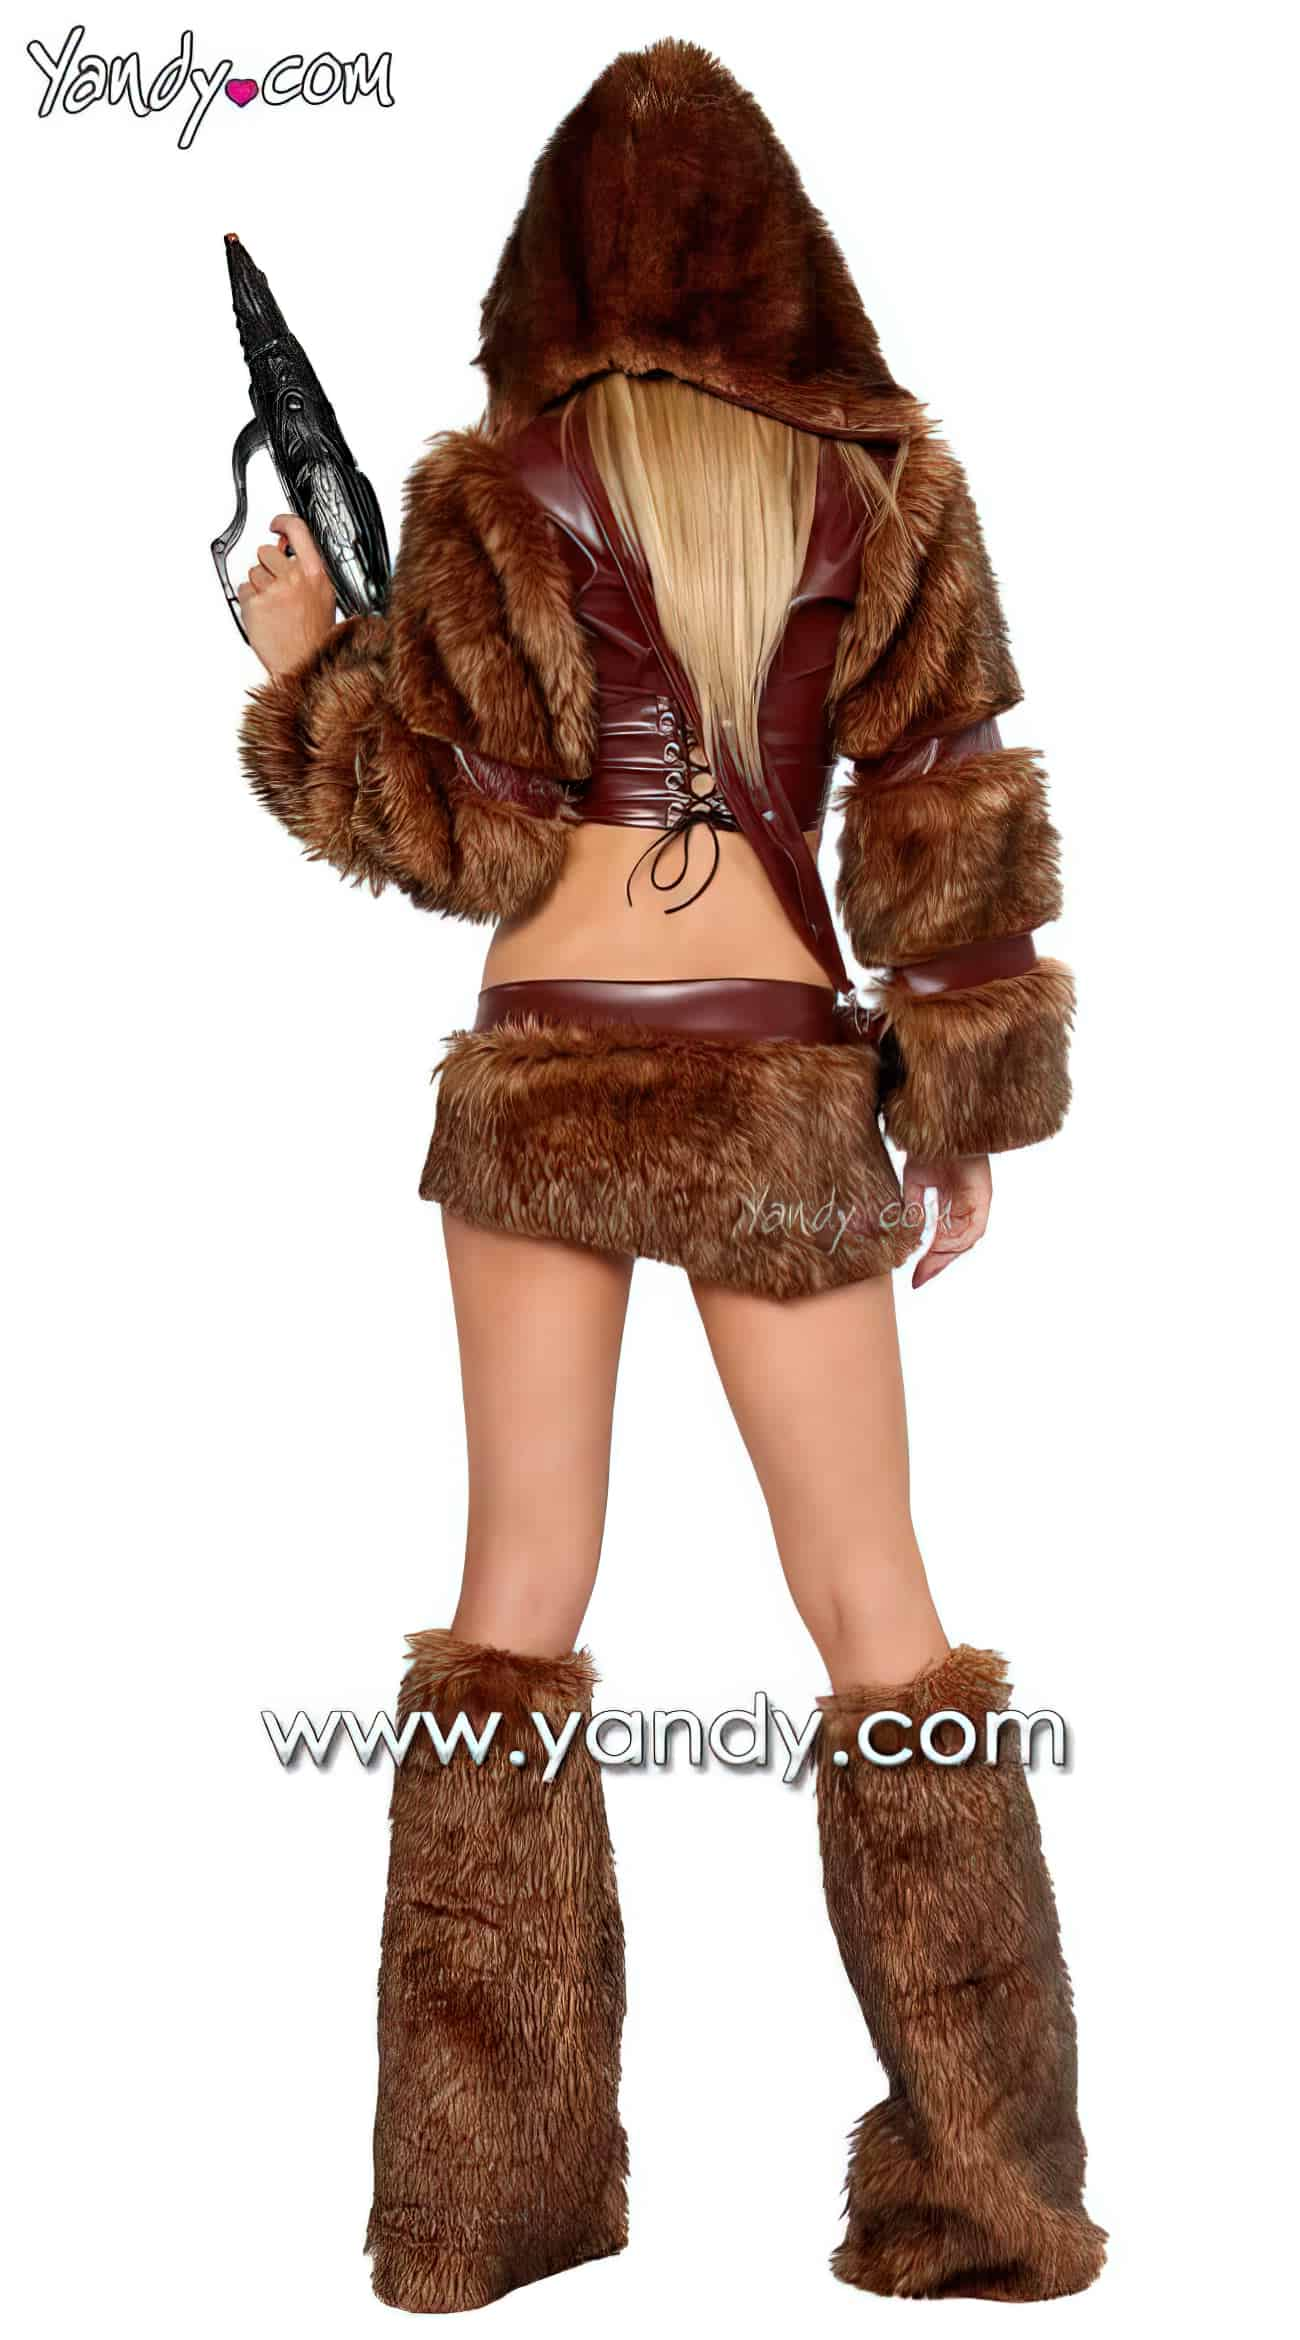 Sexy Chewbacca Costume5 upscaled